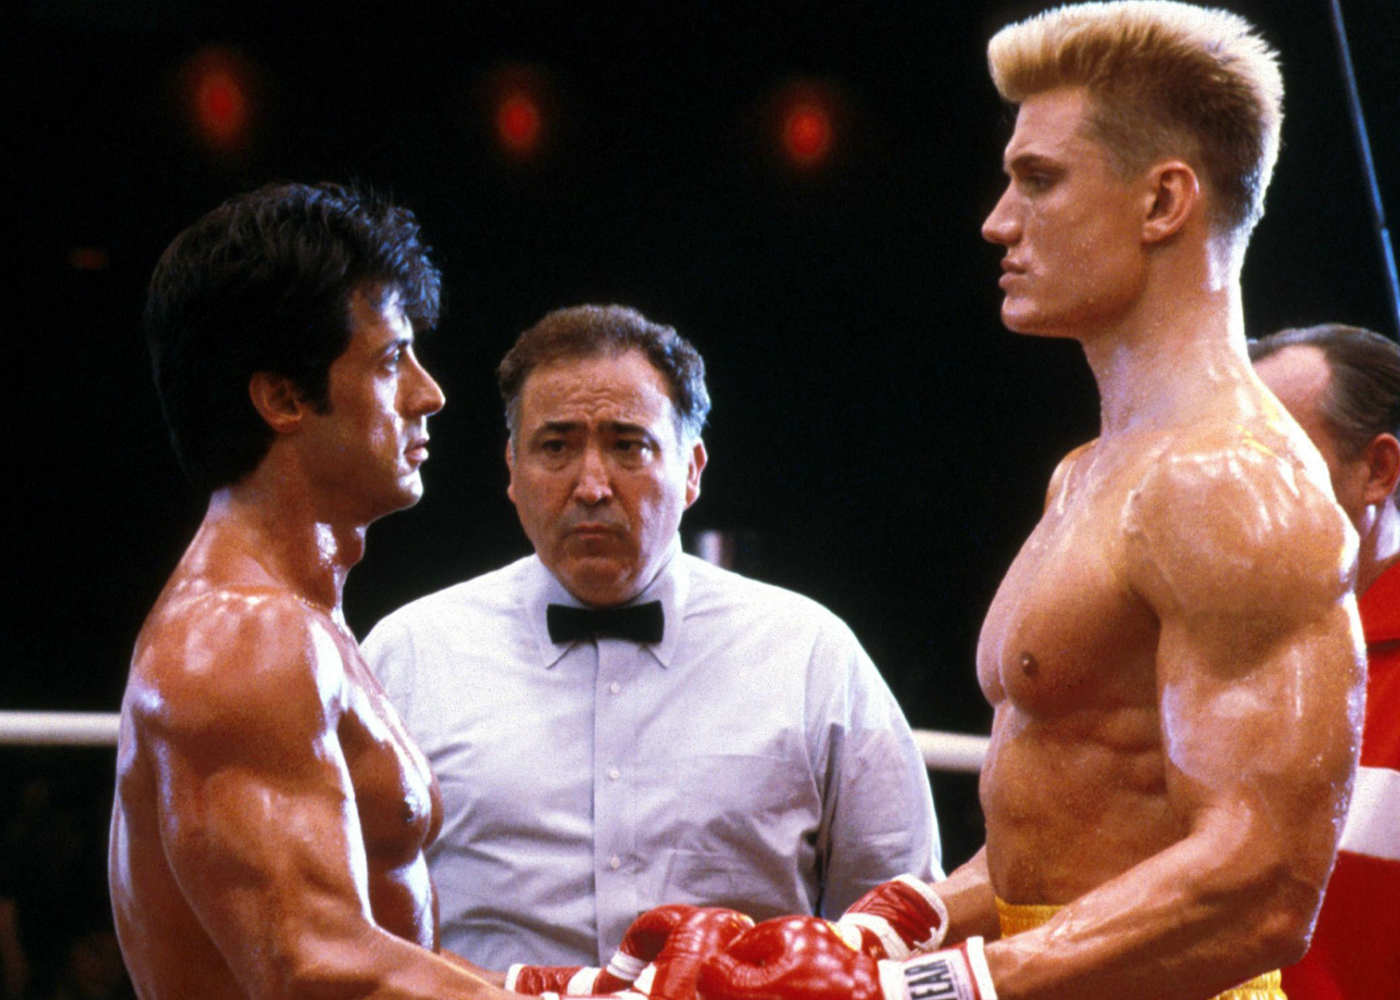 Dolph Lundgren Gets His Training Montage on for Creed 2